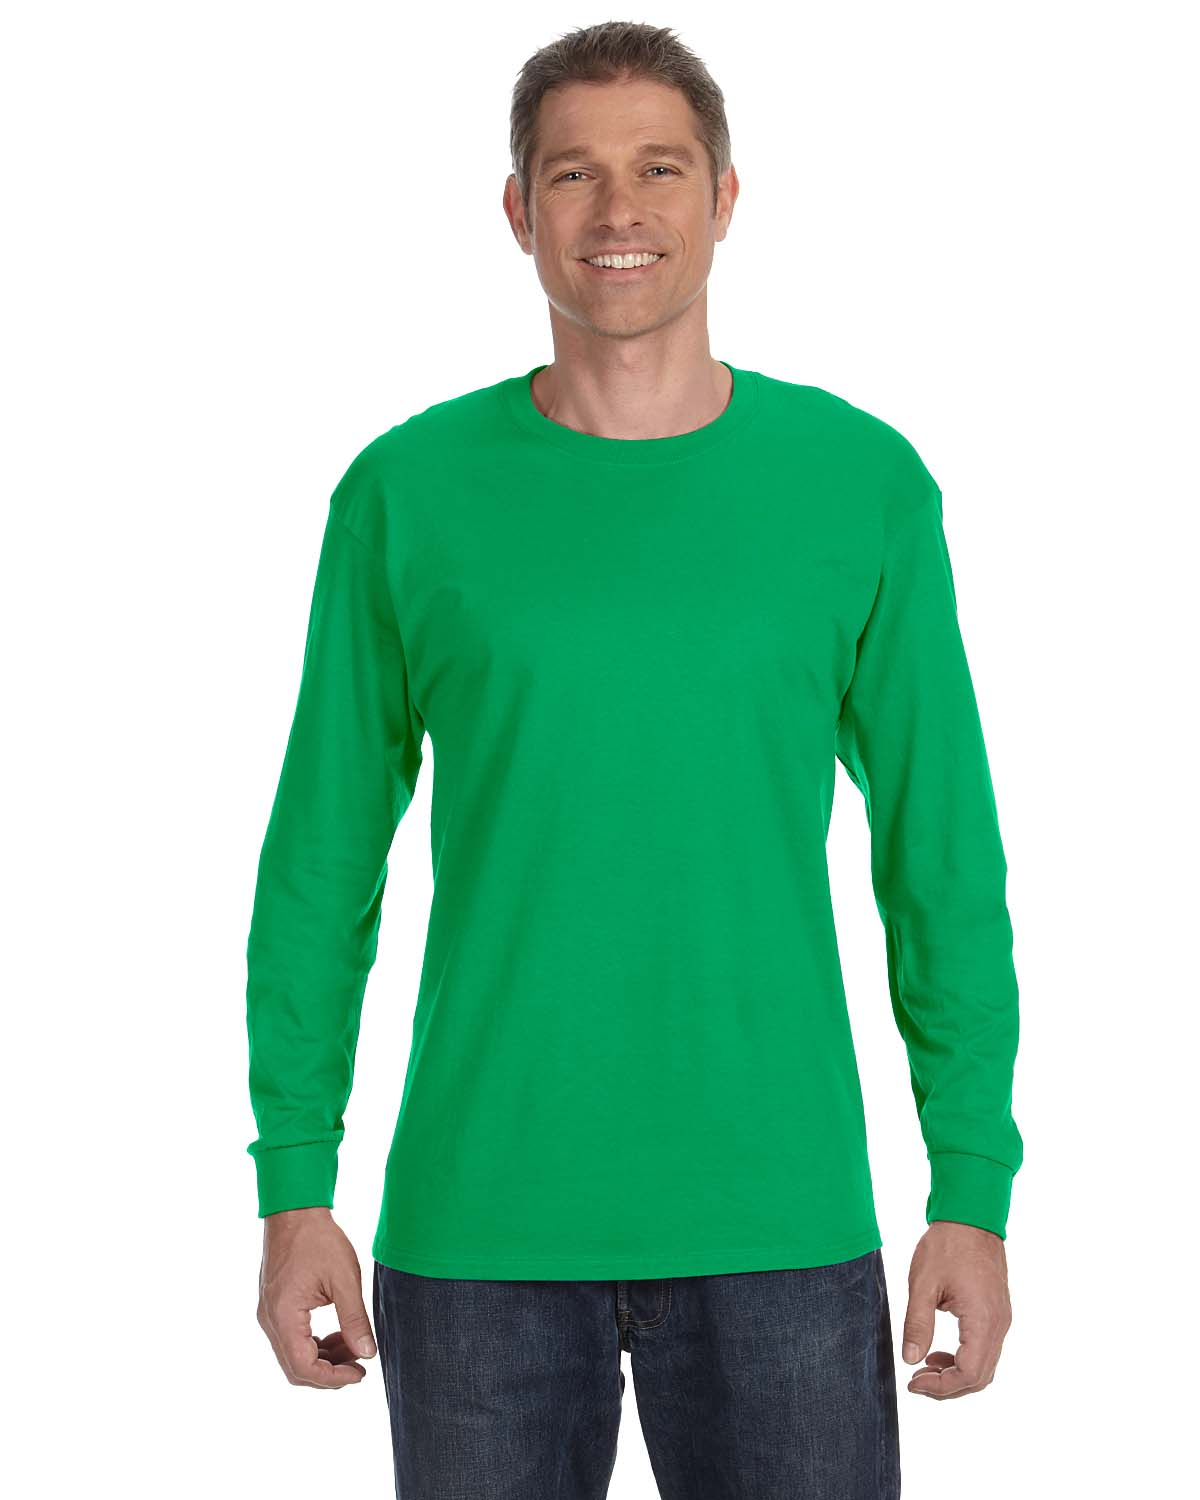 Gildan Heavy Cotton™ 5.3 Oz. Long-Sleeve T-Shirt